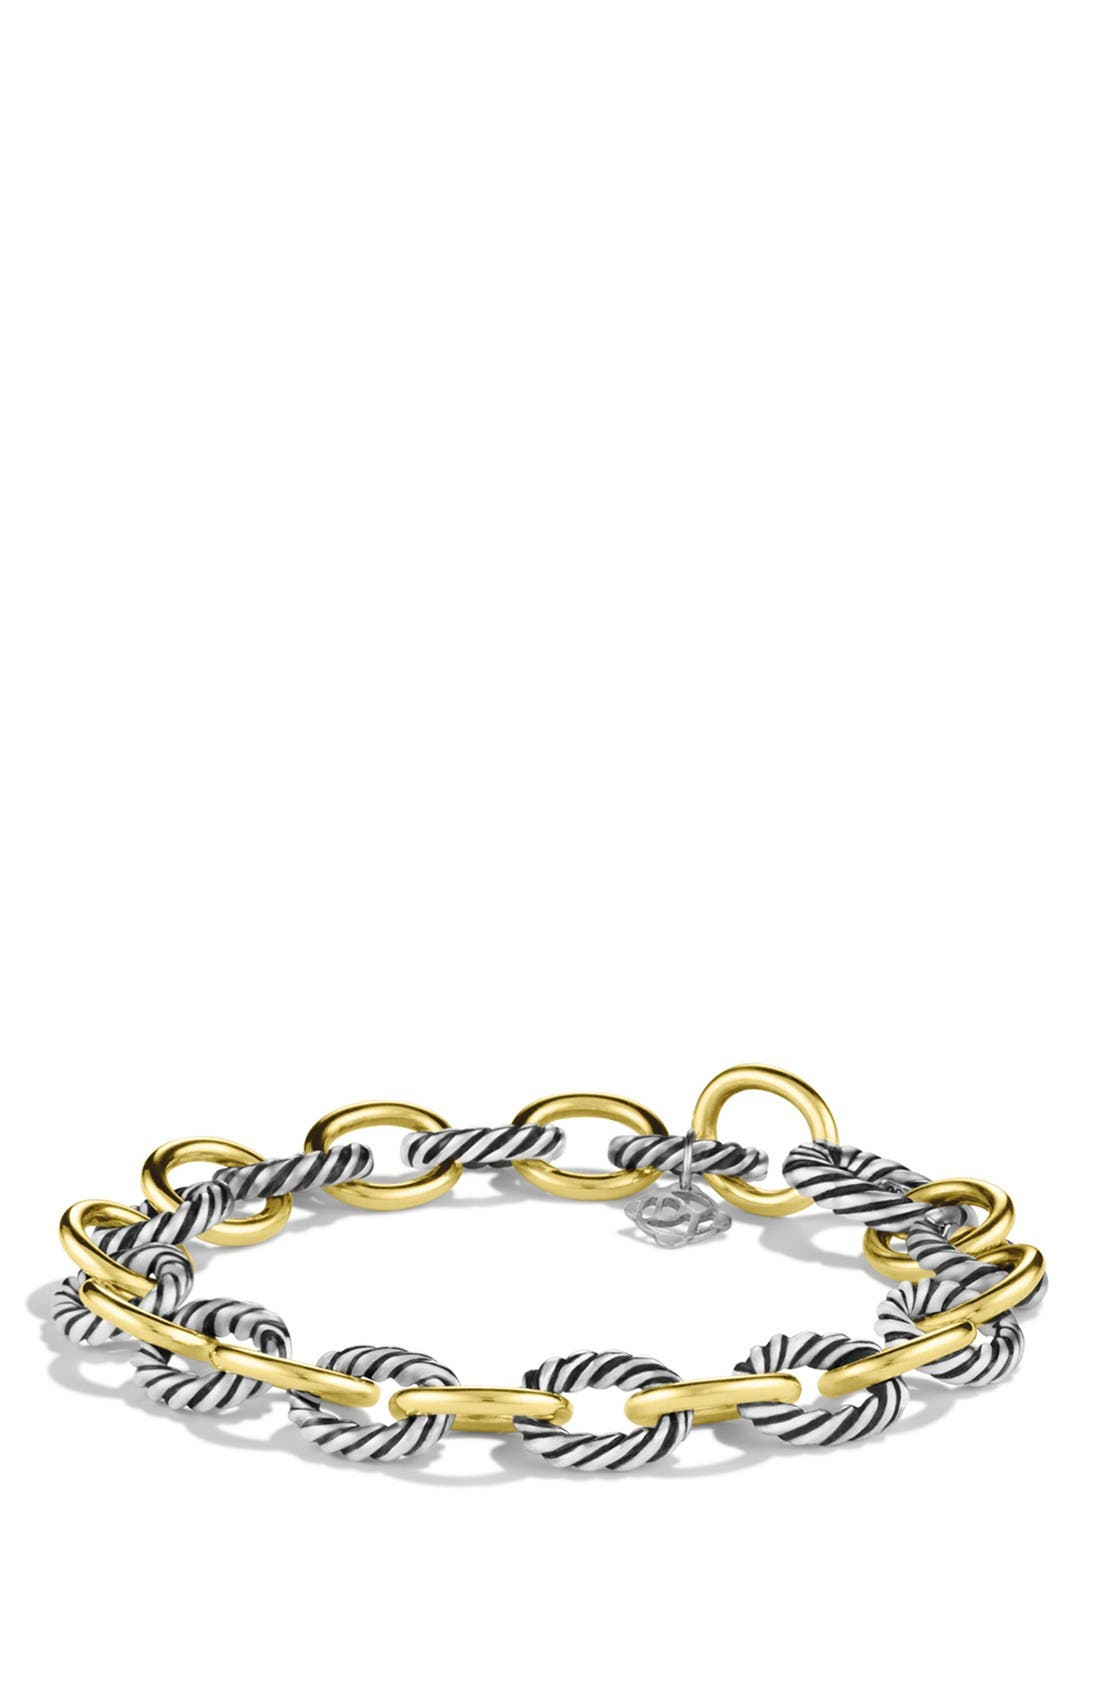 'Oval' Link Bracelet with Gold,                             Main thumbnail 1, color,                             TWO TONE